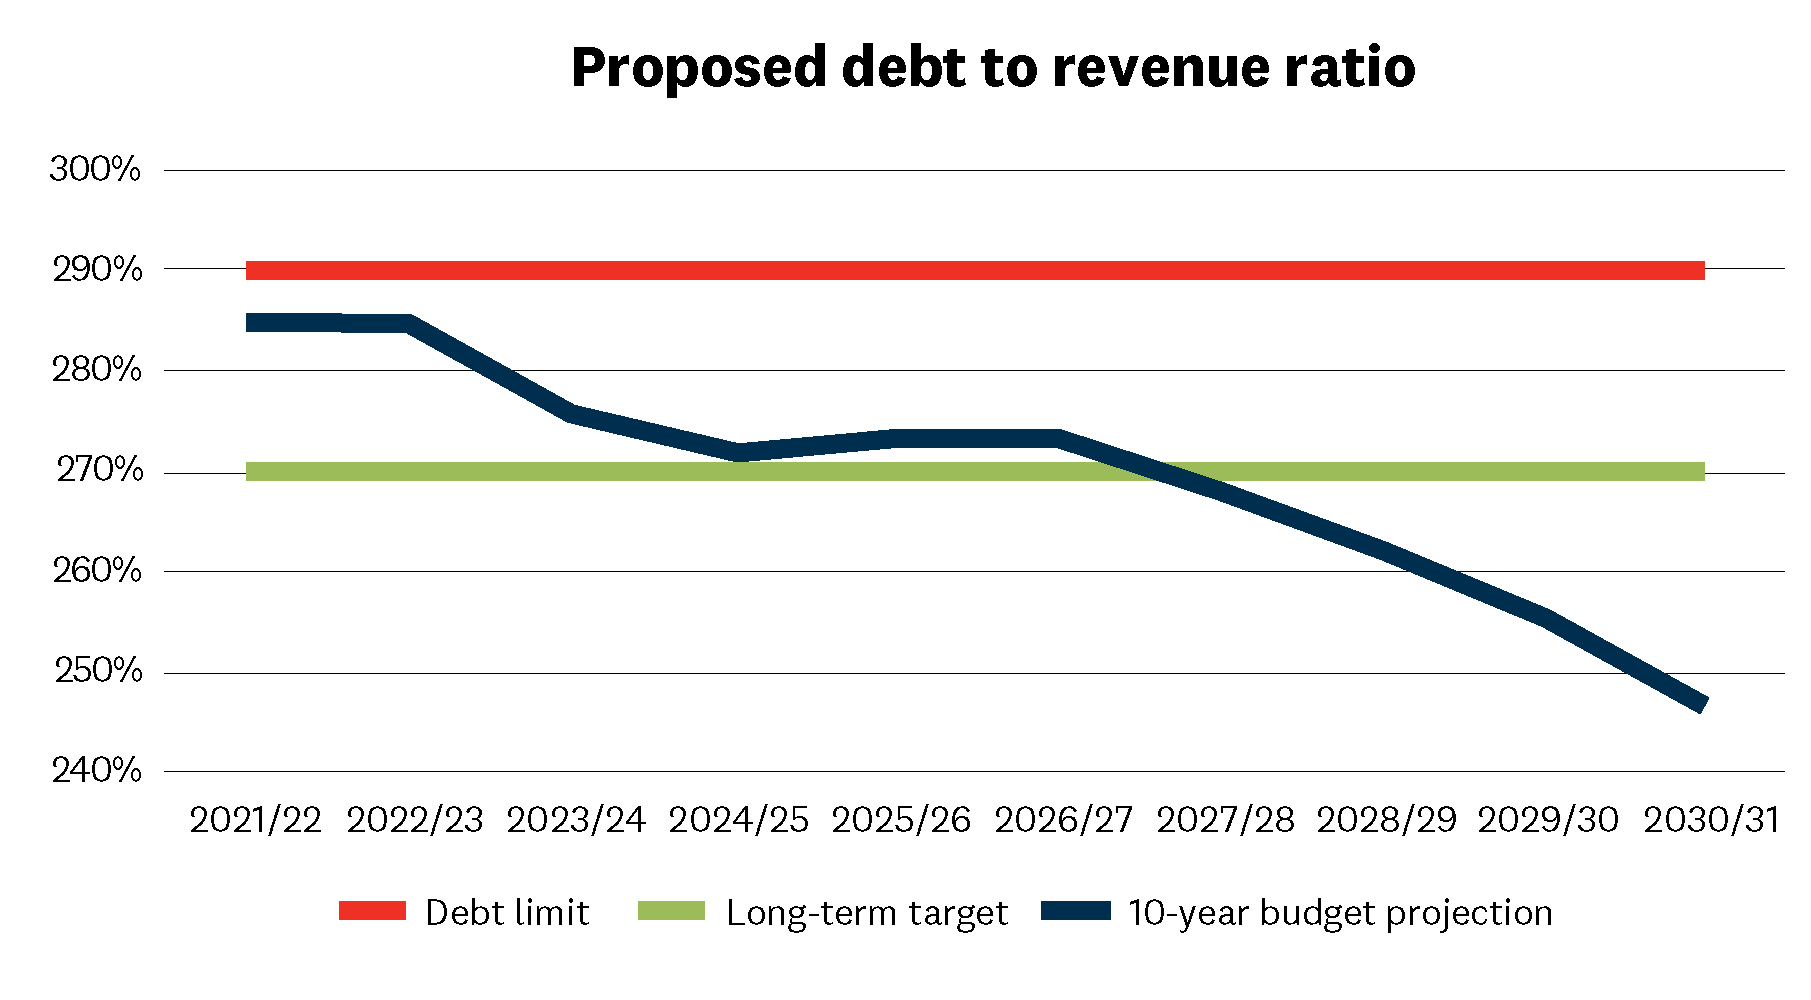 Chart shows three lines for the next 10 years. One line represents our debt limit which has been set at 290% of revenue each year. Another line shows that our long-term target remains debt being below 270% of revenue each year. The last line shows our 10-year budget projection, which shows: - Our projection for the 2021/22 and 2022/23 financial years is for debt to be 285% of revenue, below our set debt limit. - A fall in the ratio after this, falling to 275% in 2023/24 financial year, and then being a fraction above our long-term target of 270% in the 2024/25 and 2025/26 financial years. - Dropping below our long-term limit of 270% in the years following, with debt being at around 246% in the 2030/31 financial year.